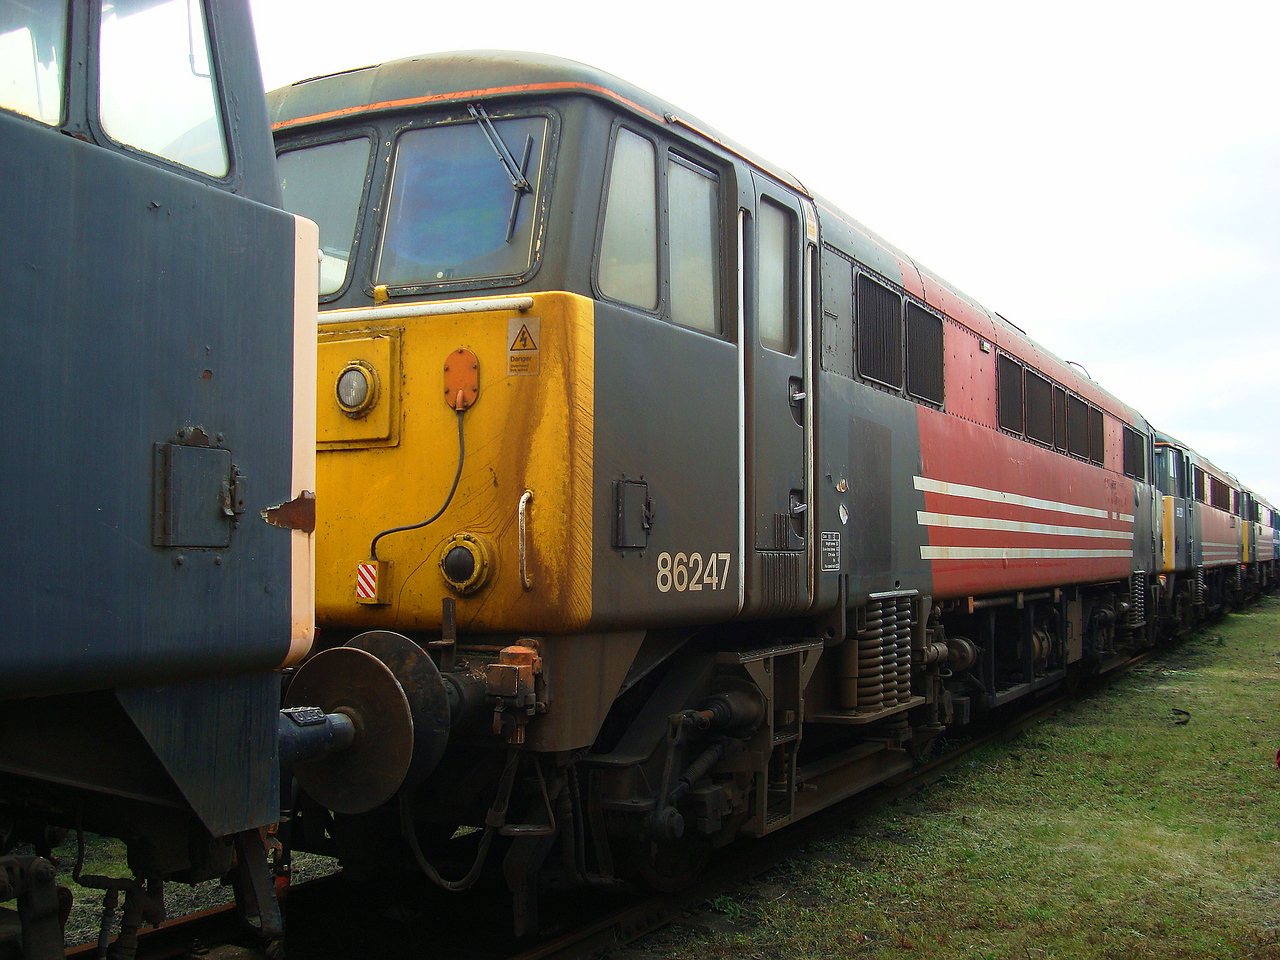 (86247) 07,06,2008 (Now At Crewe LNWR In Europhoenix Livery))